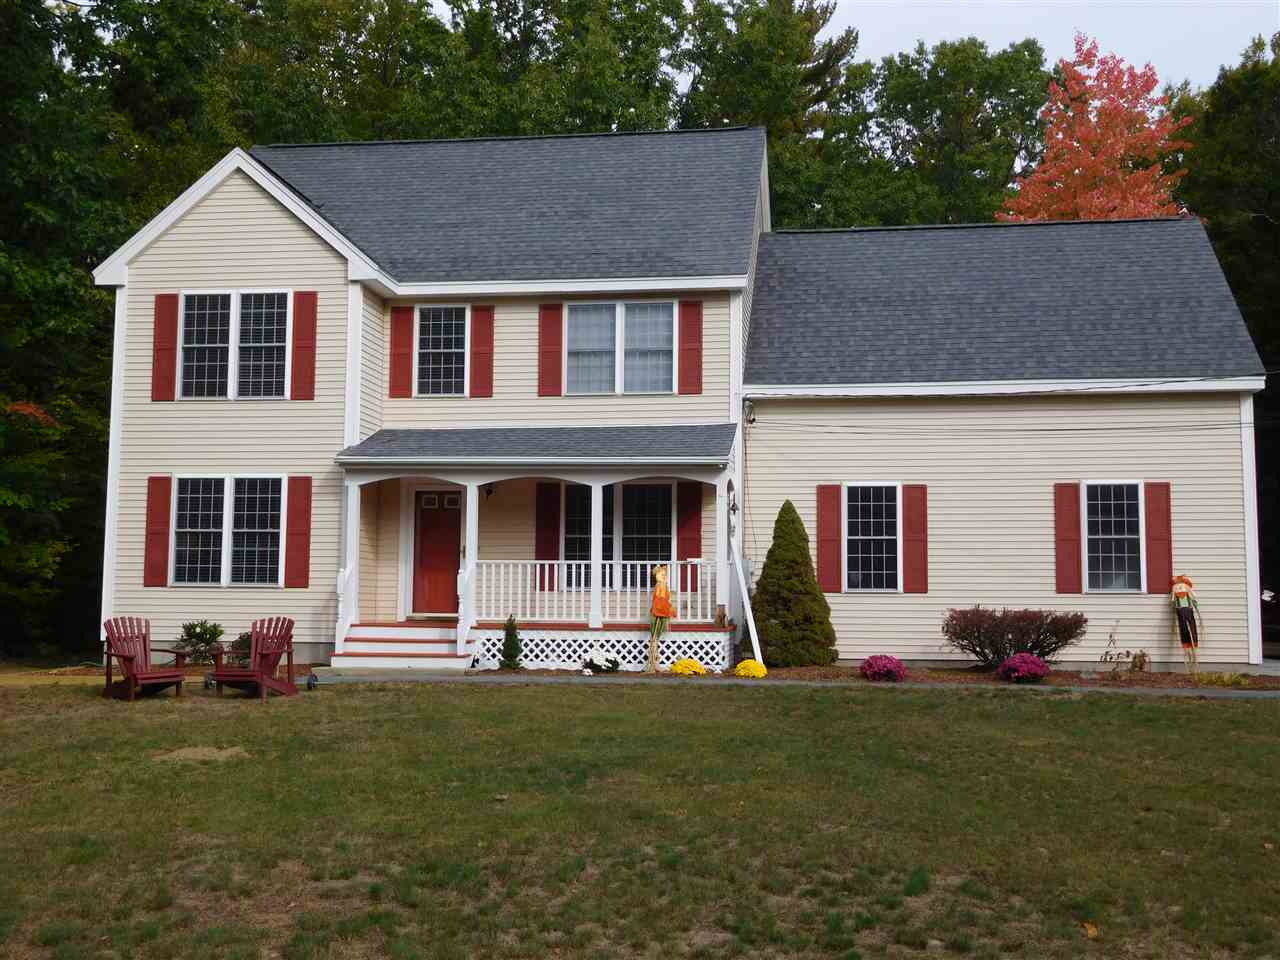 Goffstown Nh Property Taxes